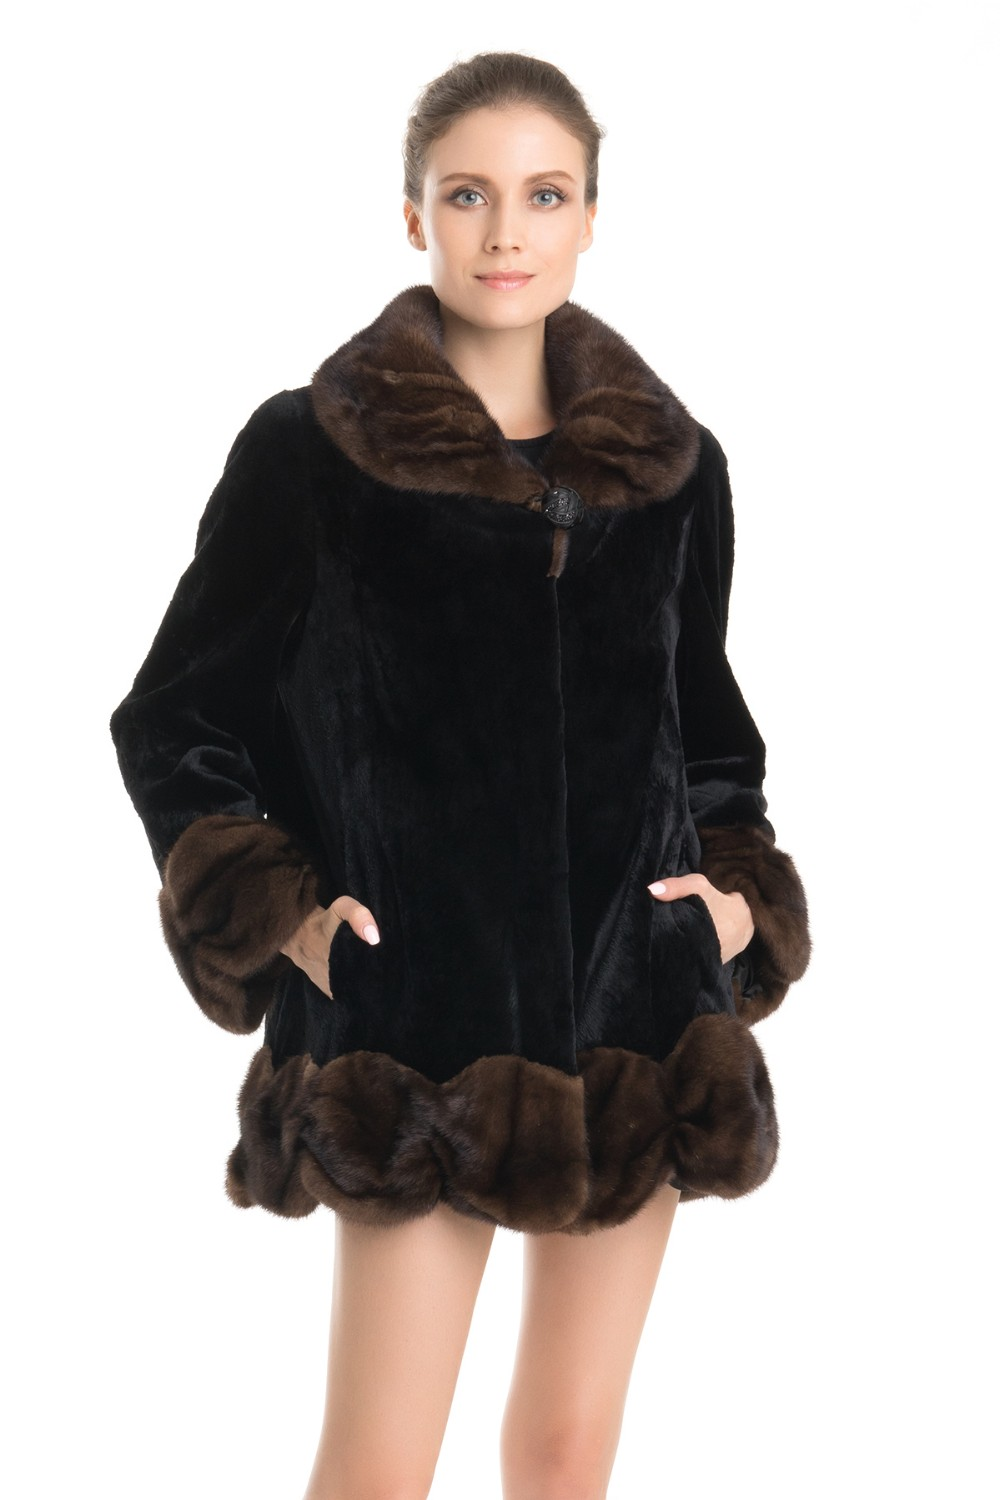 QD70709 High Fashion and Quality Winter Mink Fur Coats Jackets with Flounced Trim Alibaba Express Turkey